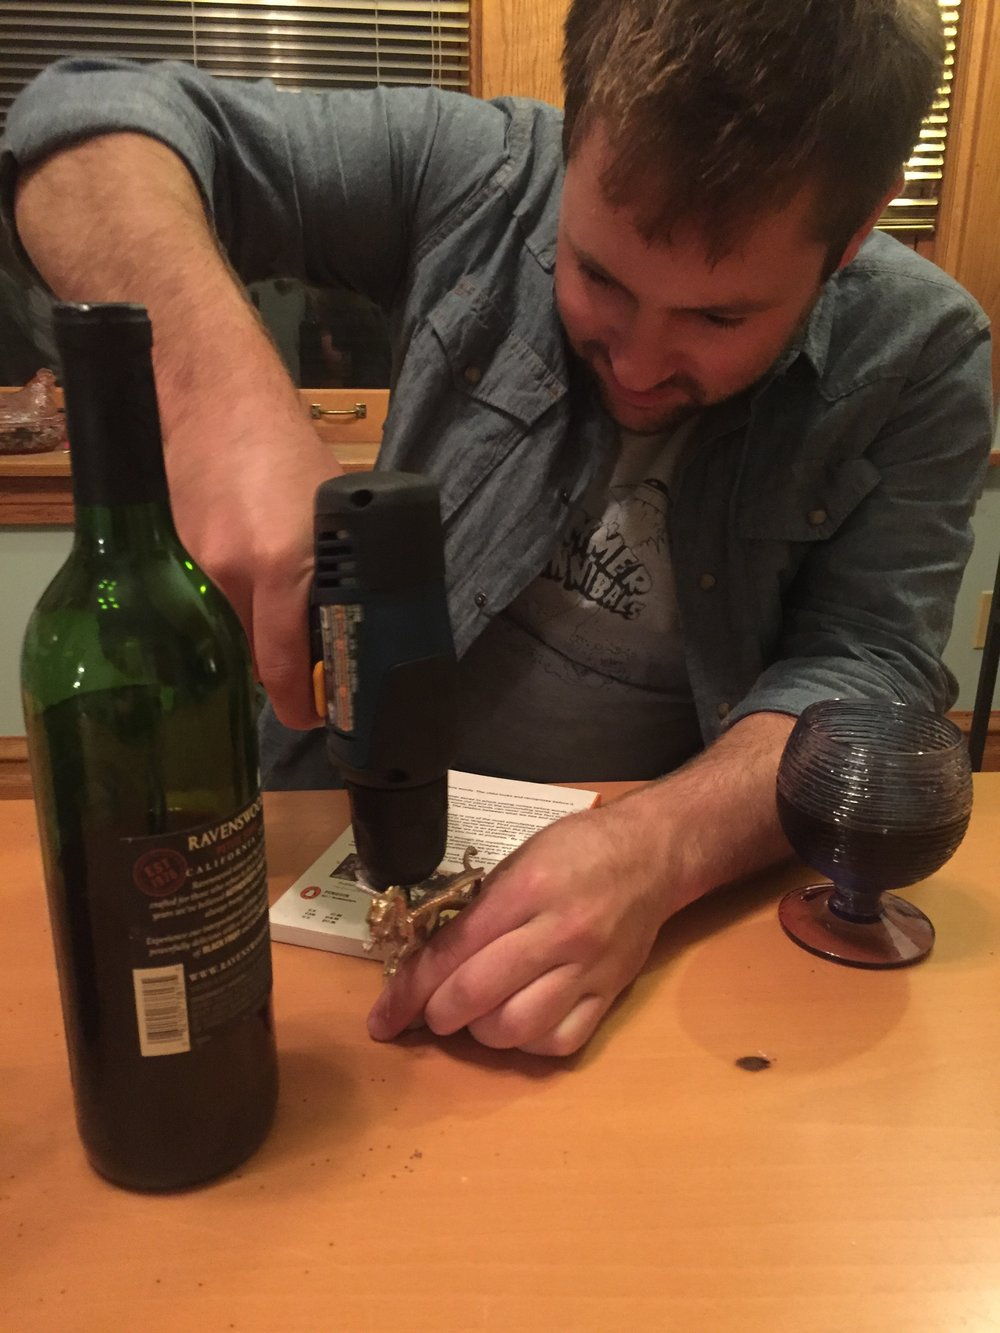 He should probably be wearing safety things and not just holding the cork with his bare hands. Buuuuut, ya know.